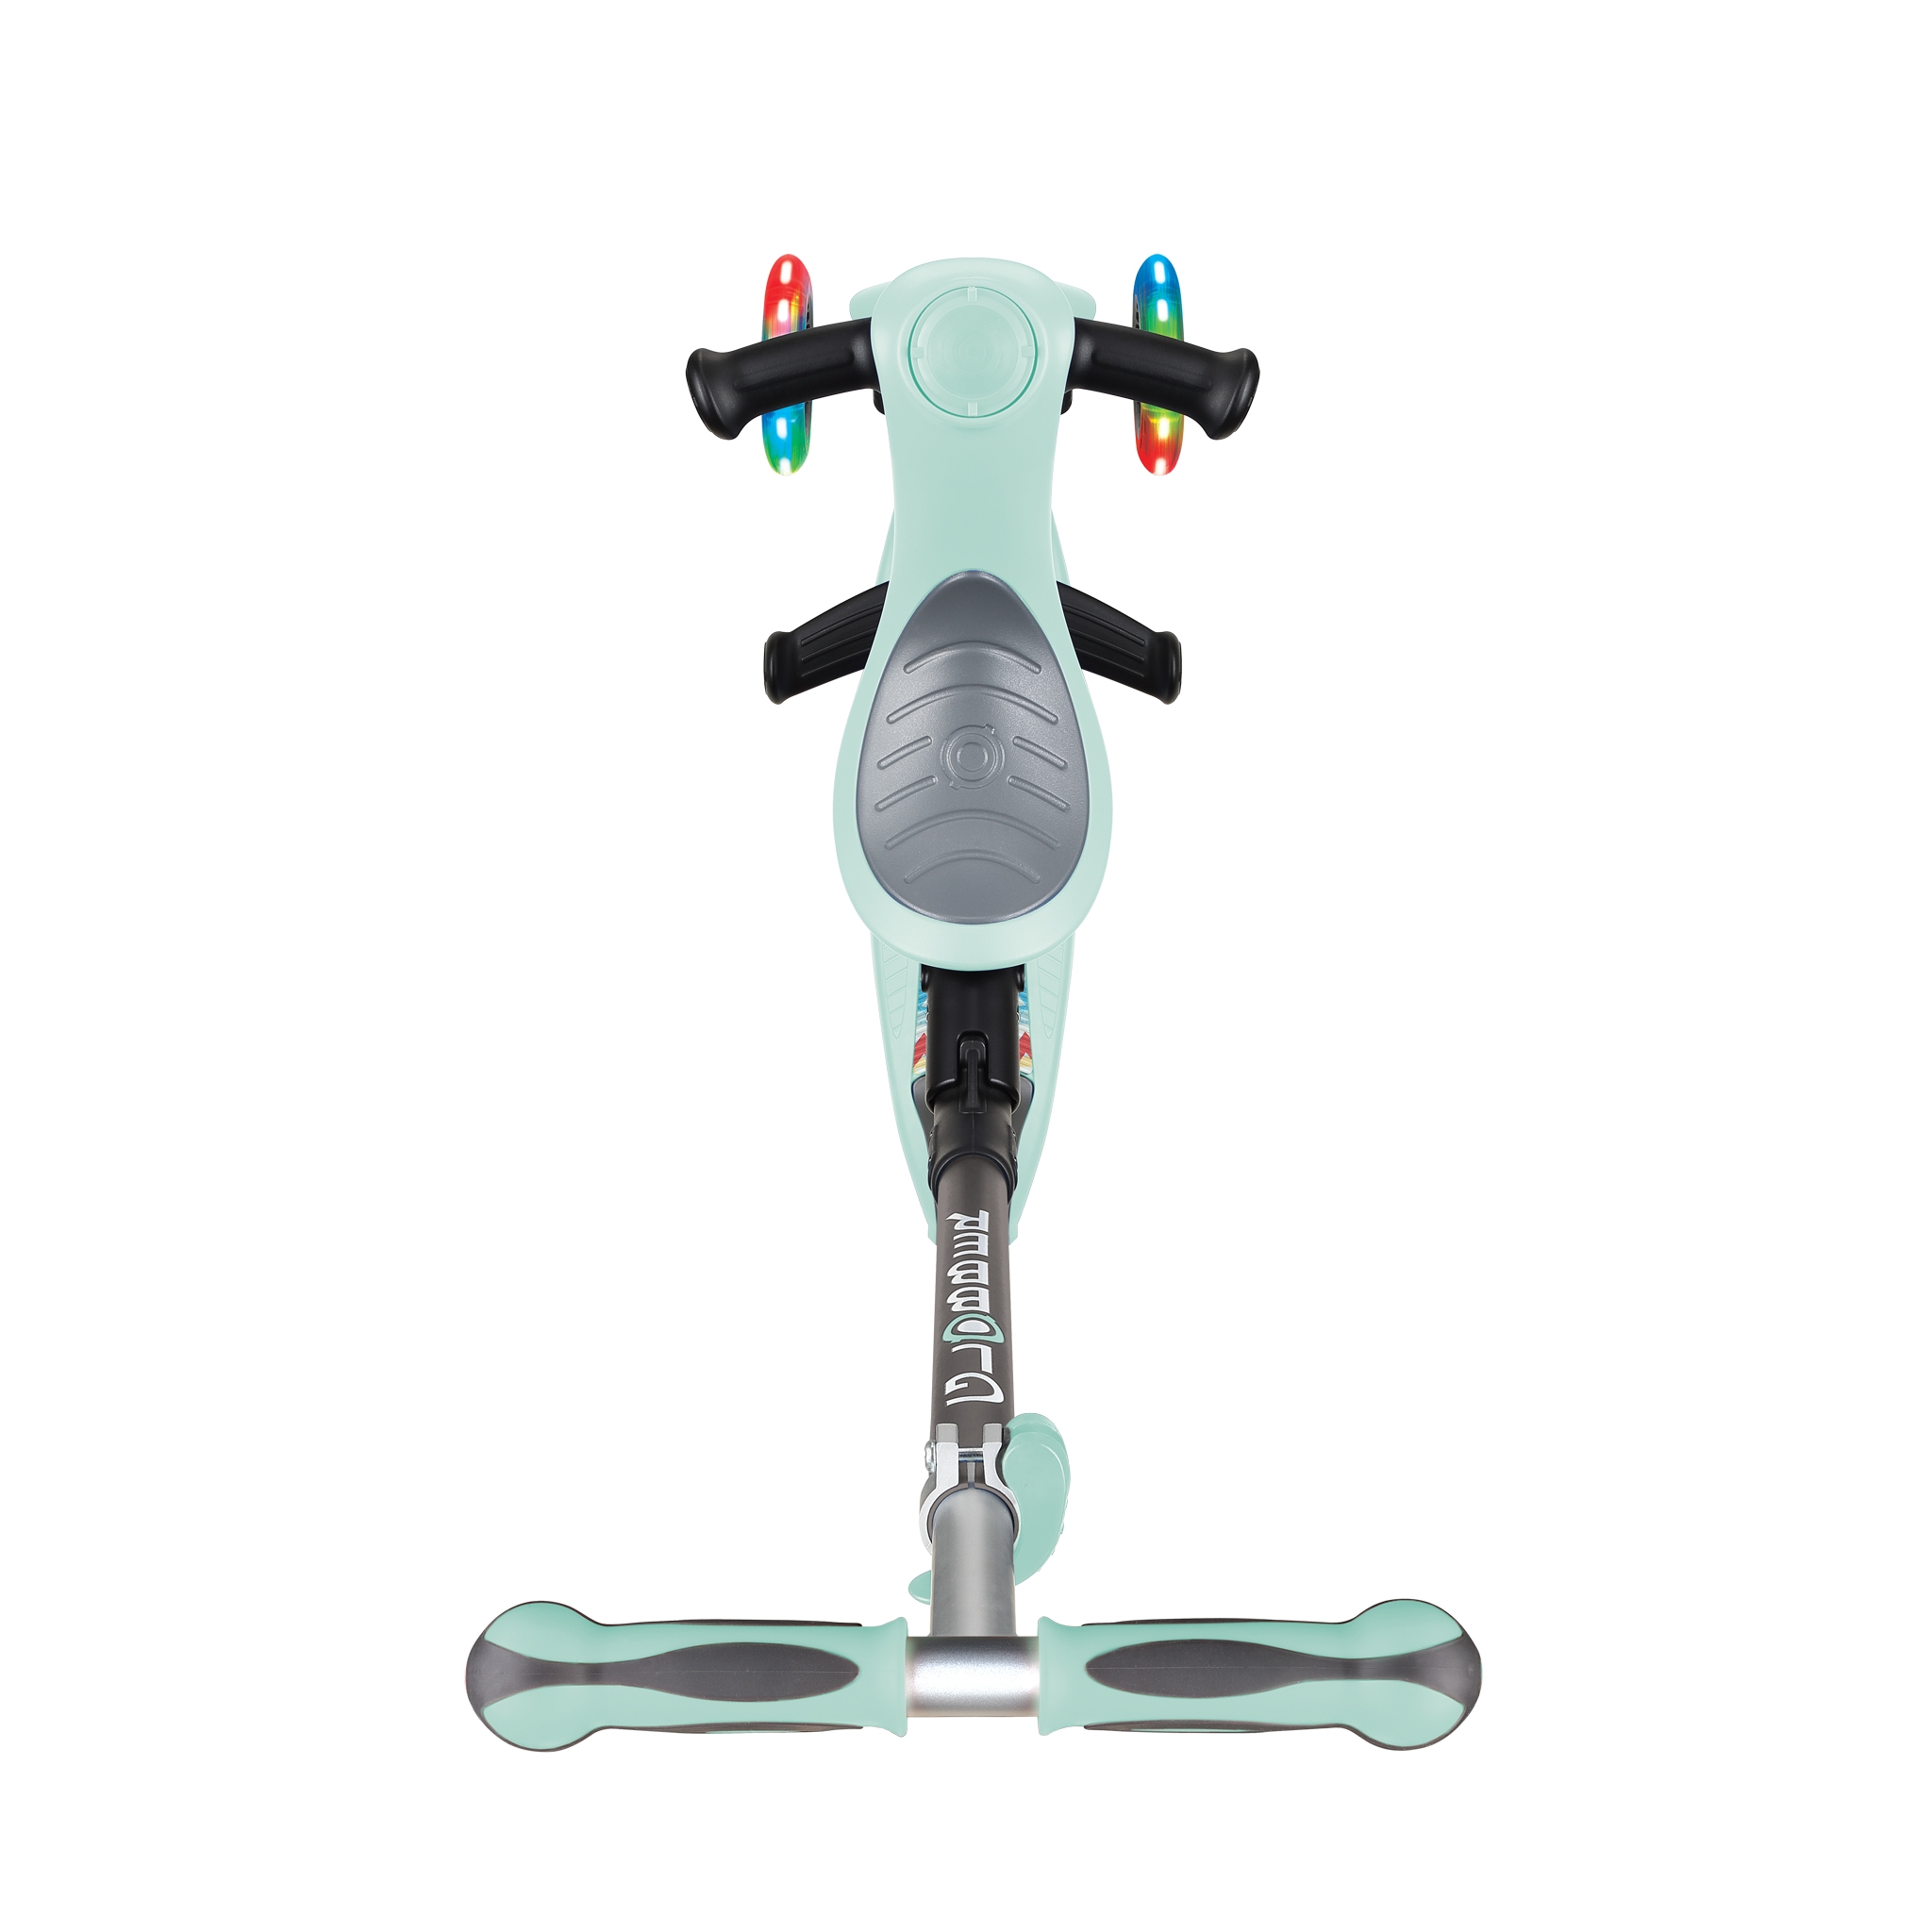 scooter-with-seat-for-toddlers-with-wide-seat-GO-UP-DELUXE-FANTASY-LIGHTS 7